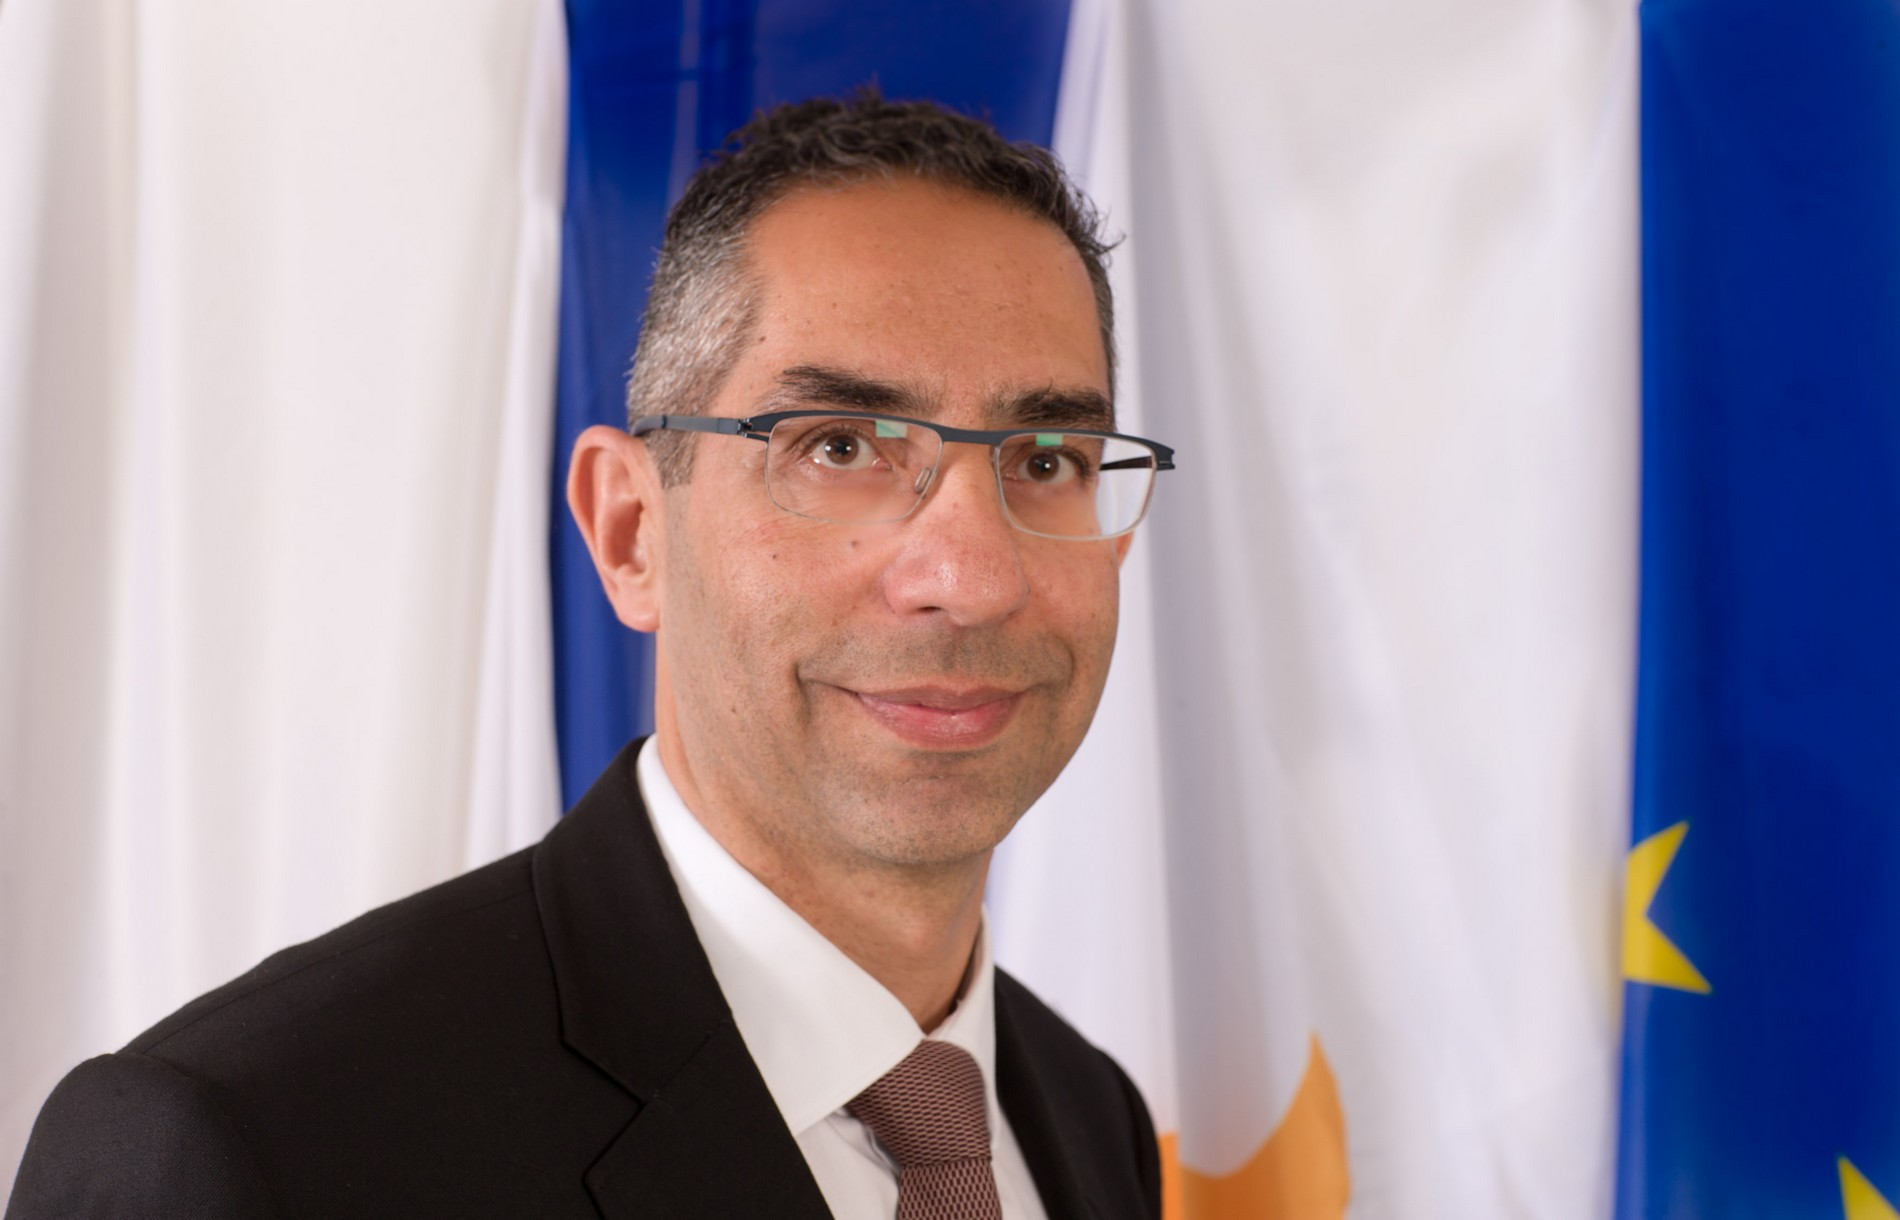 Cyprus' Defence Minister speaks of an isolated incident